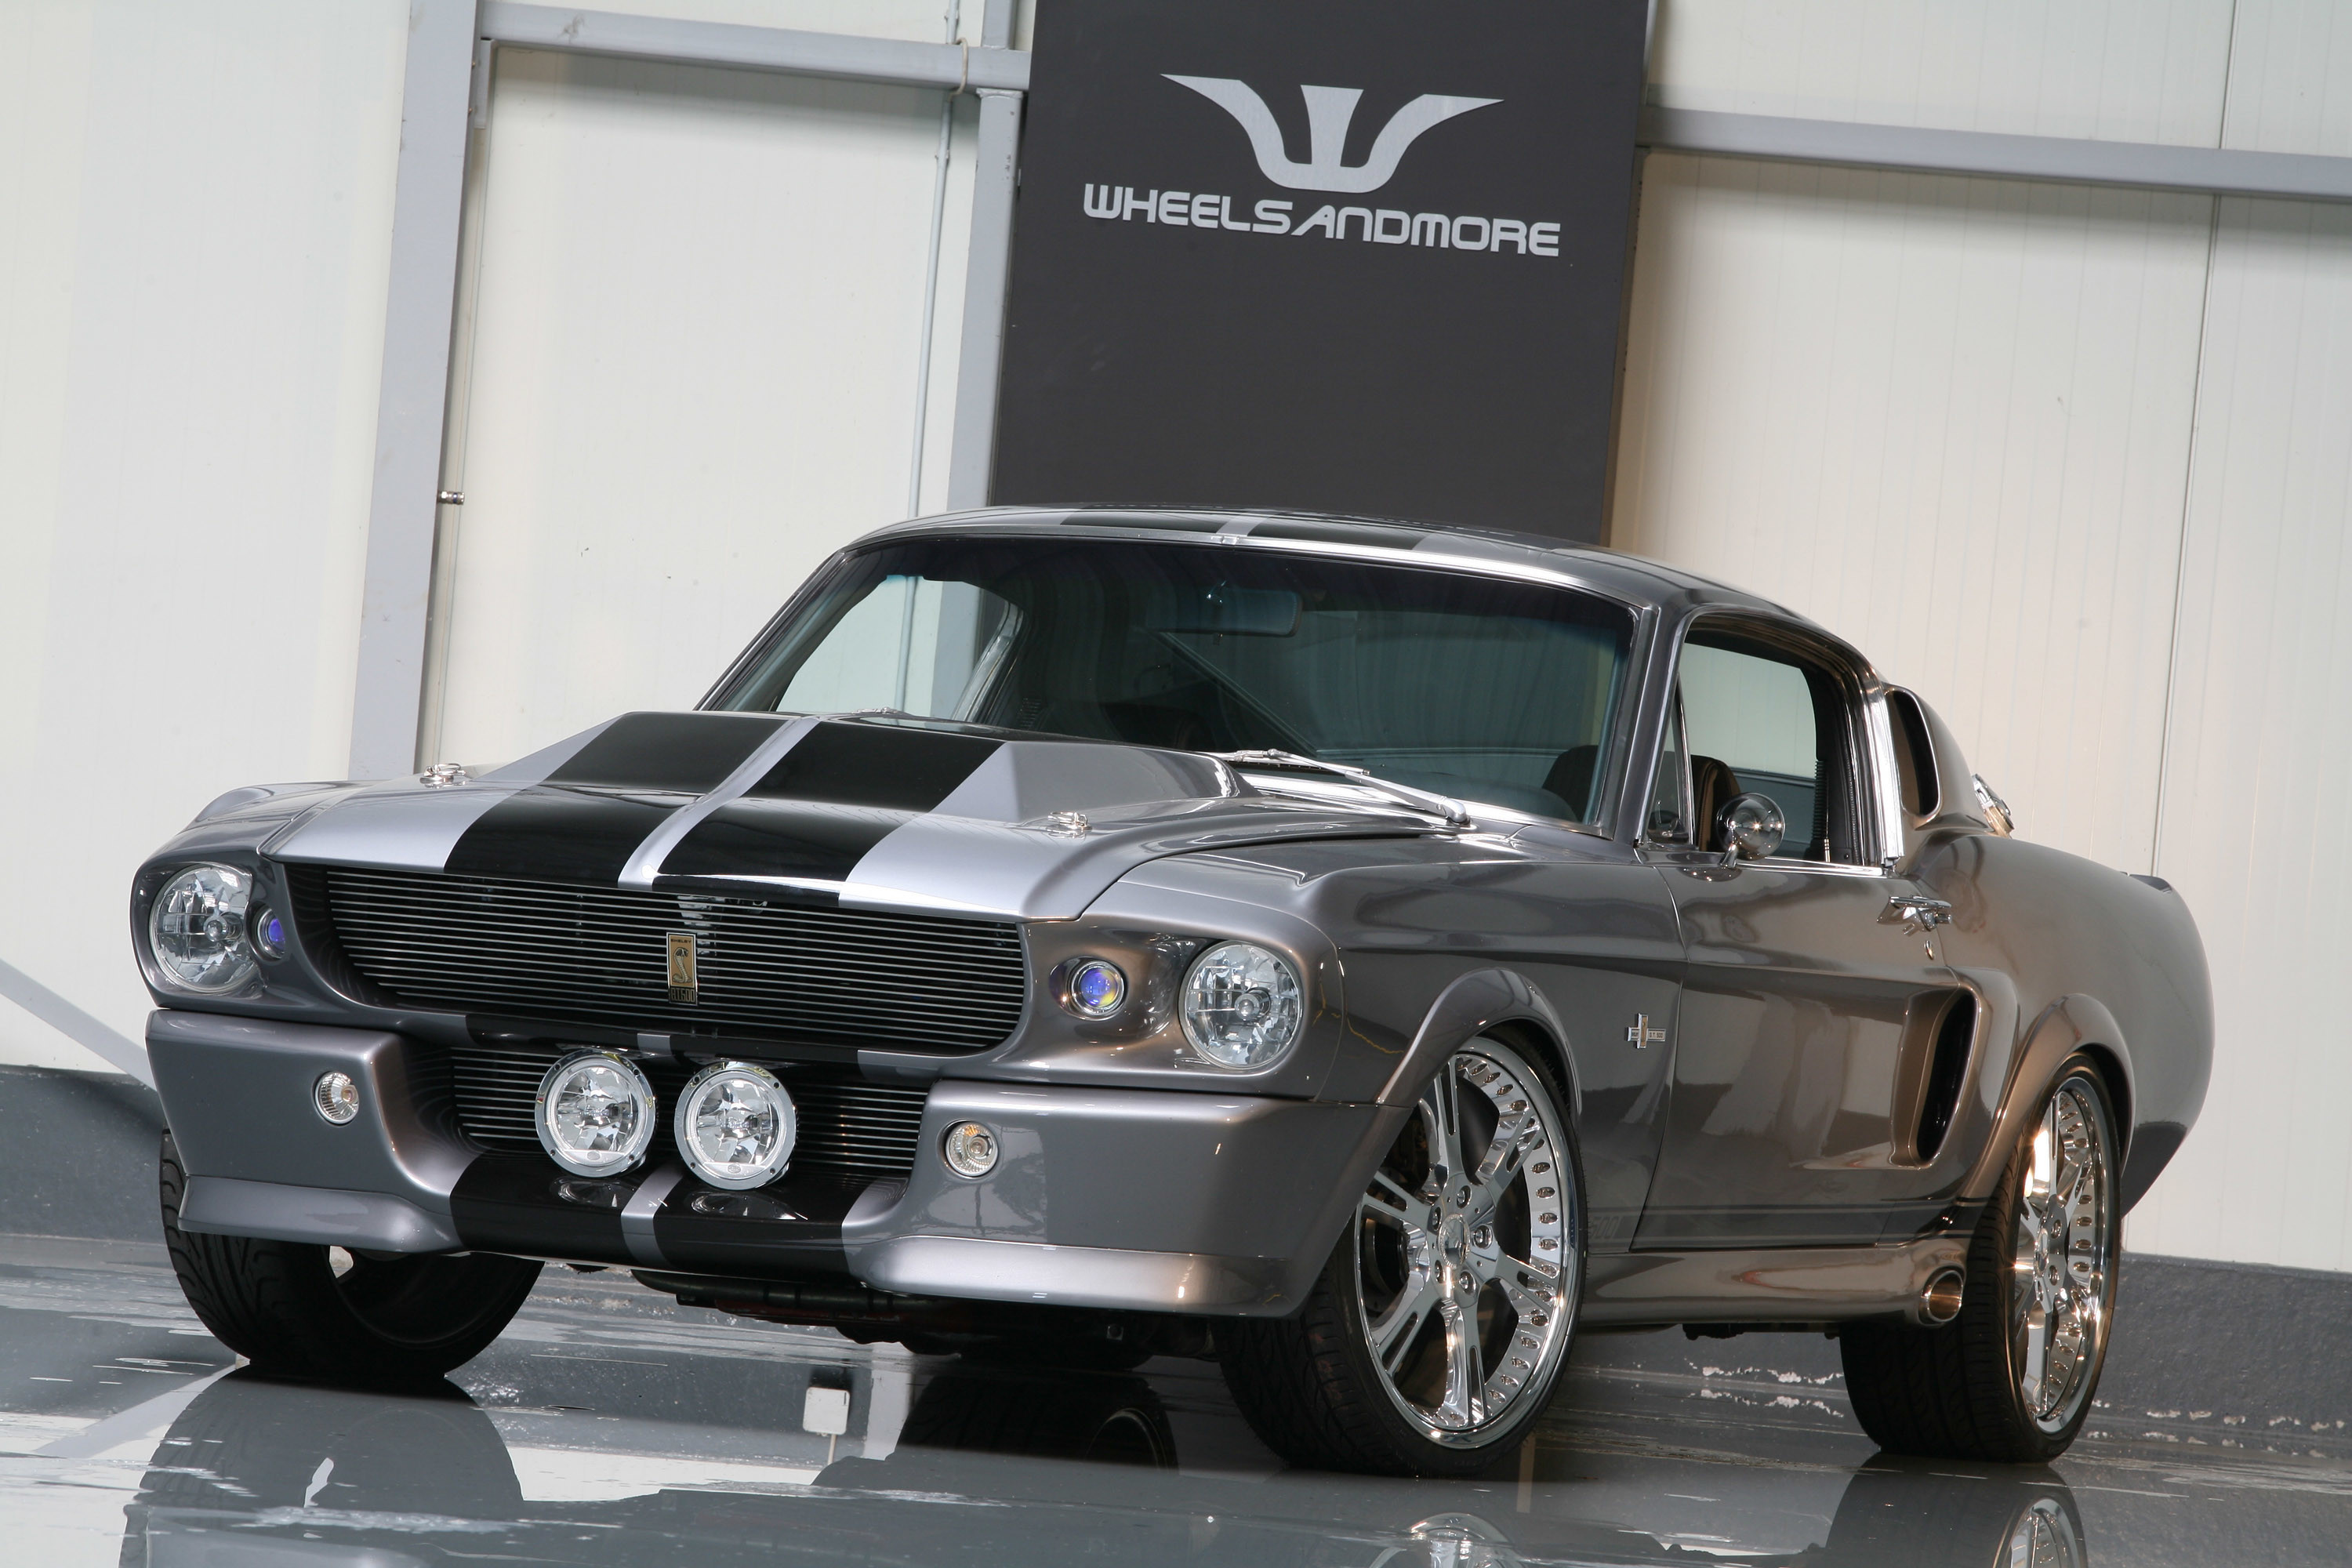 Wheelsandmore Mustang Shelby GT500 – ELEANOR wallpaper